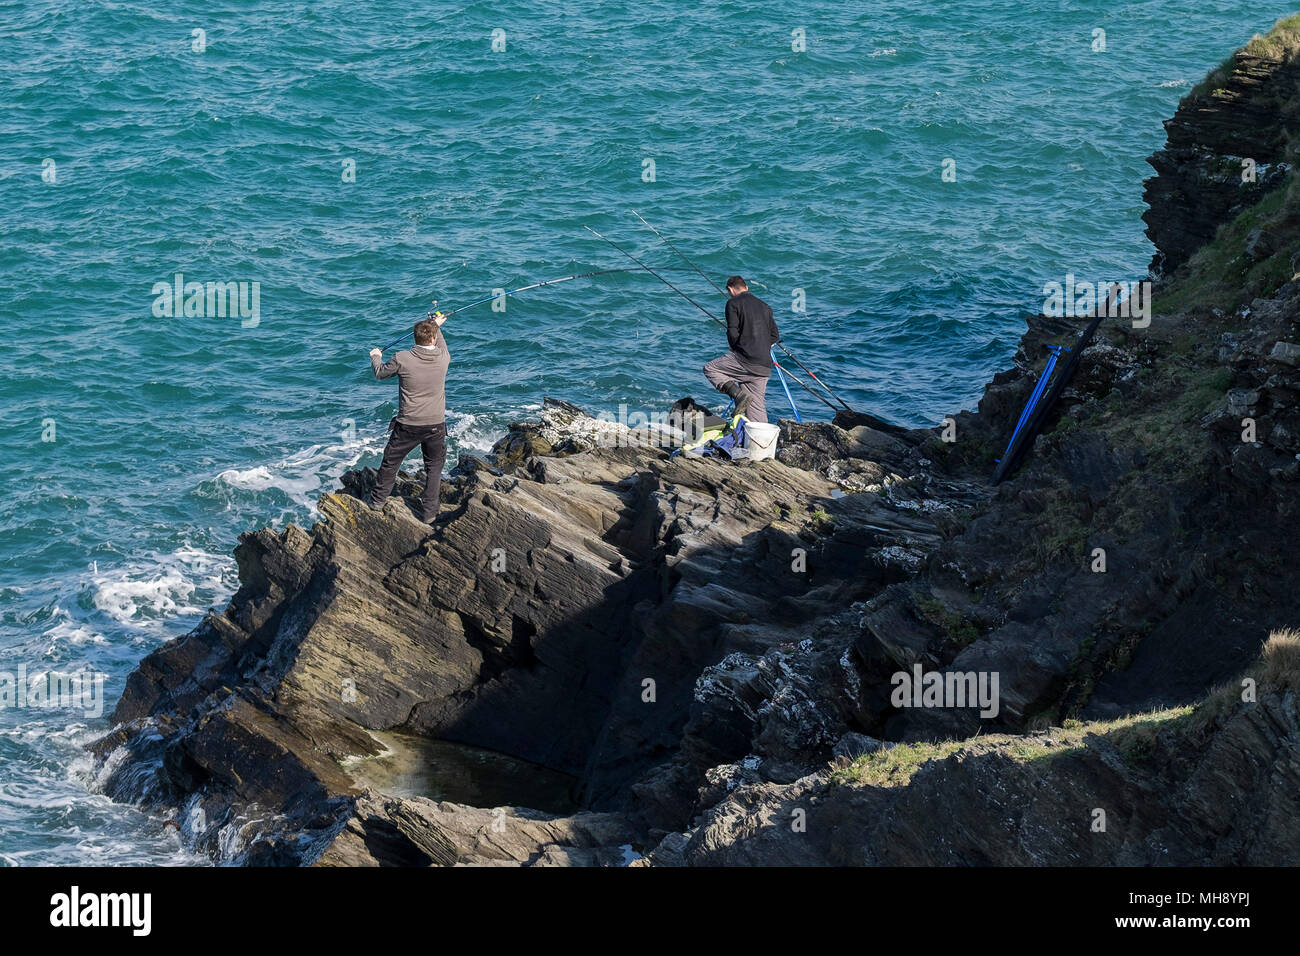 Anglers fishing off rocks in Newquay in Cornwall. Stock Photo